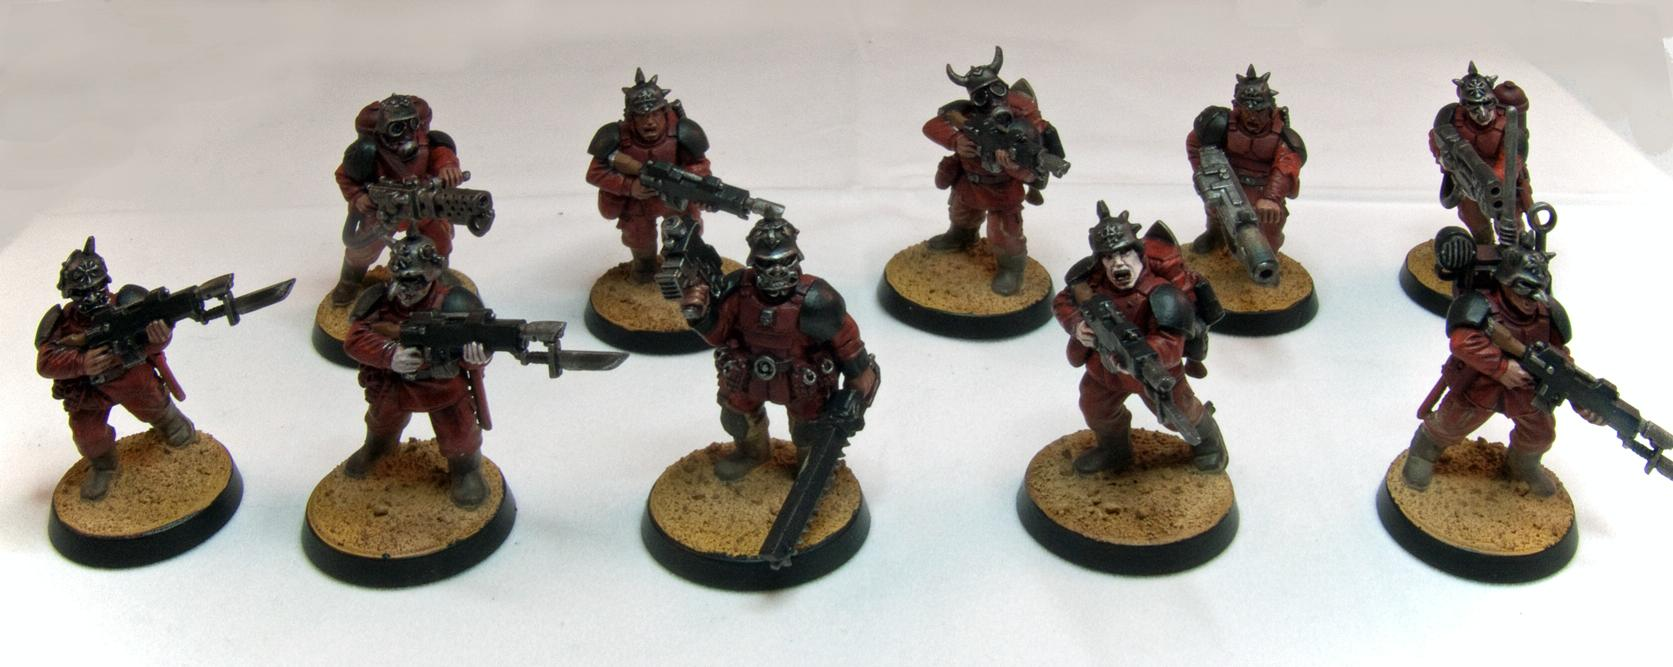 Blood Pact, Imperial Guard, Renegade, Warhammer 40,000